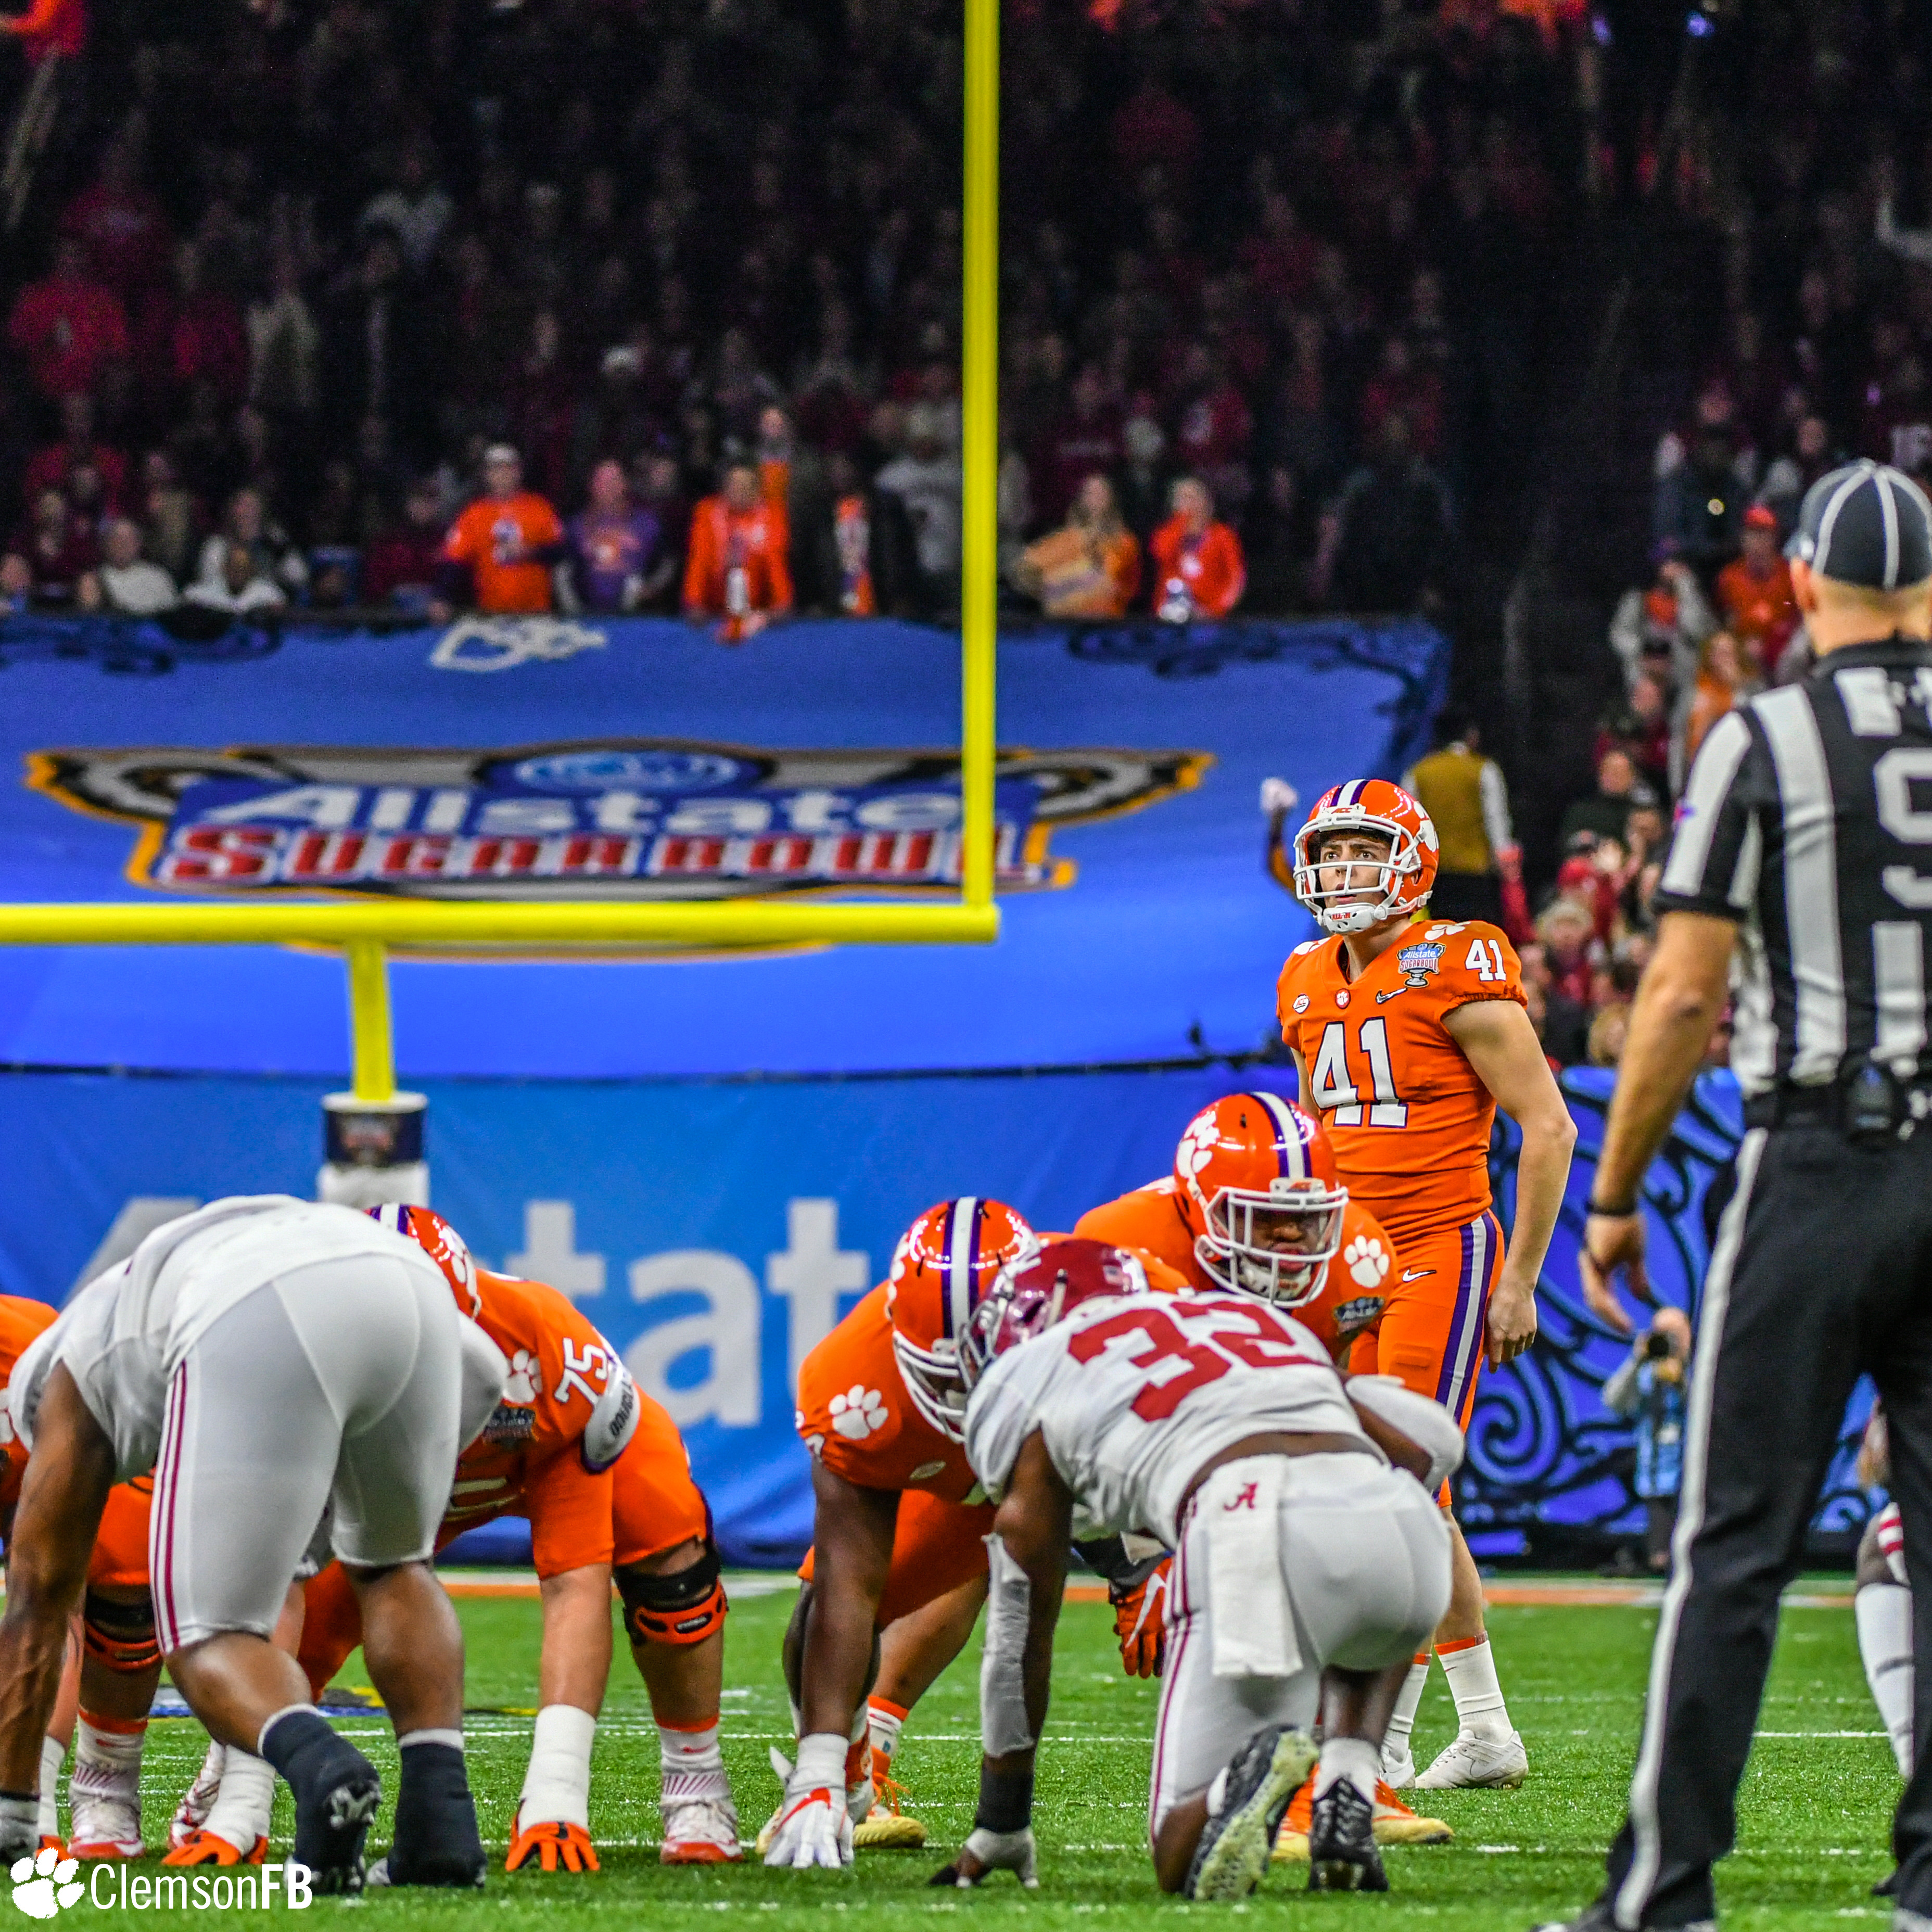 No. 1 Clemson Falls to No. 4 Alabama in Sugar Bowl